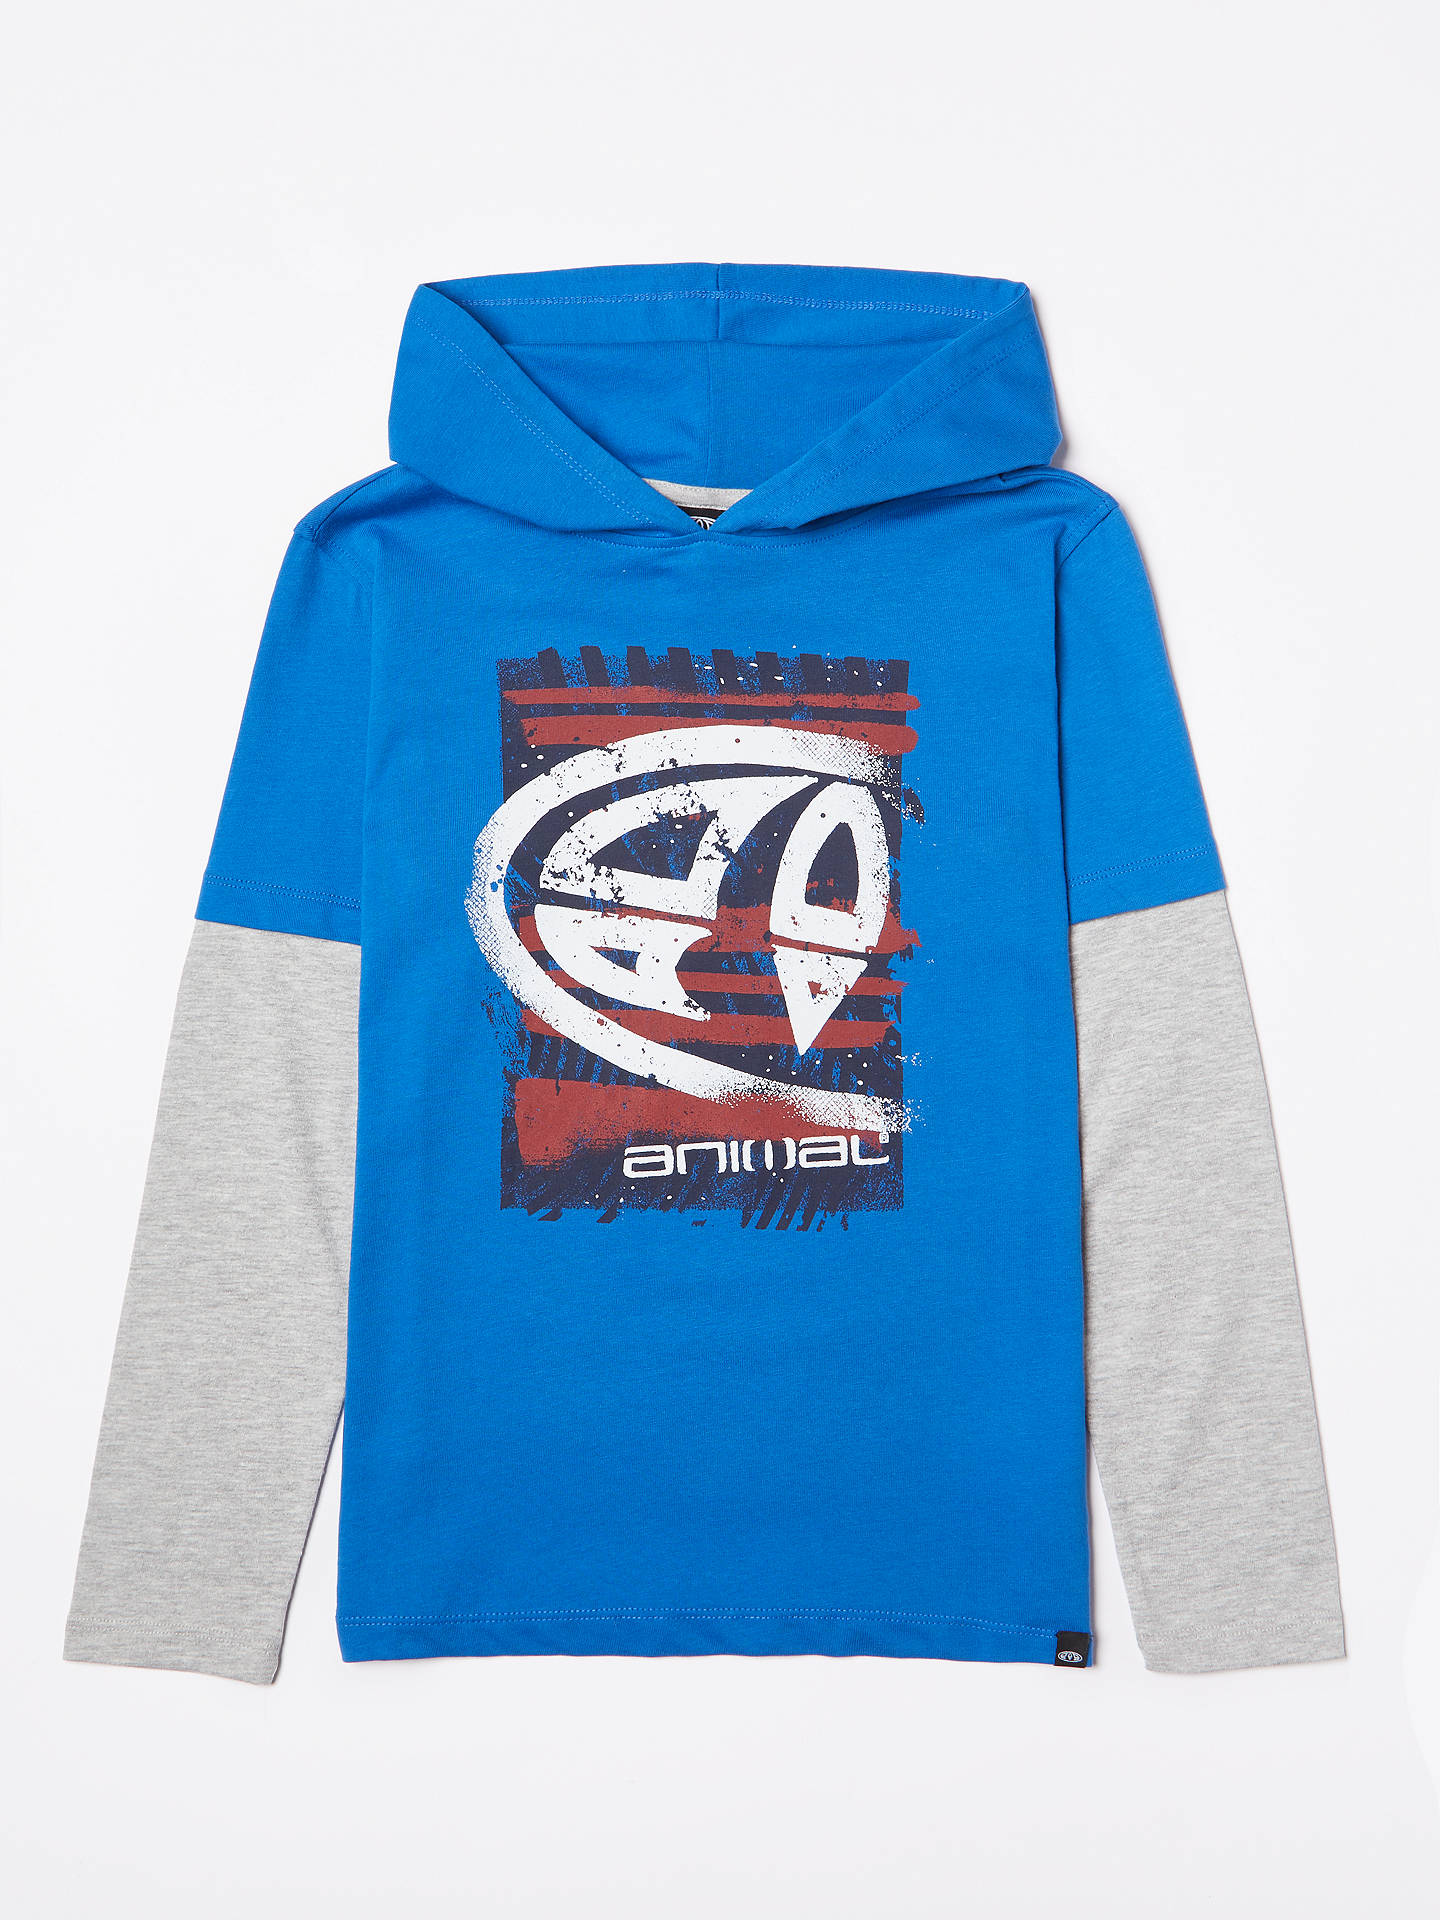 Buy Animal Boys' Fargo Hooded Long Sleeve T-Shirt, Blue, 13-14 years Online at johnlewis.com